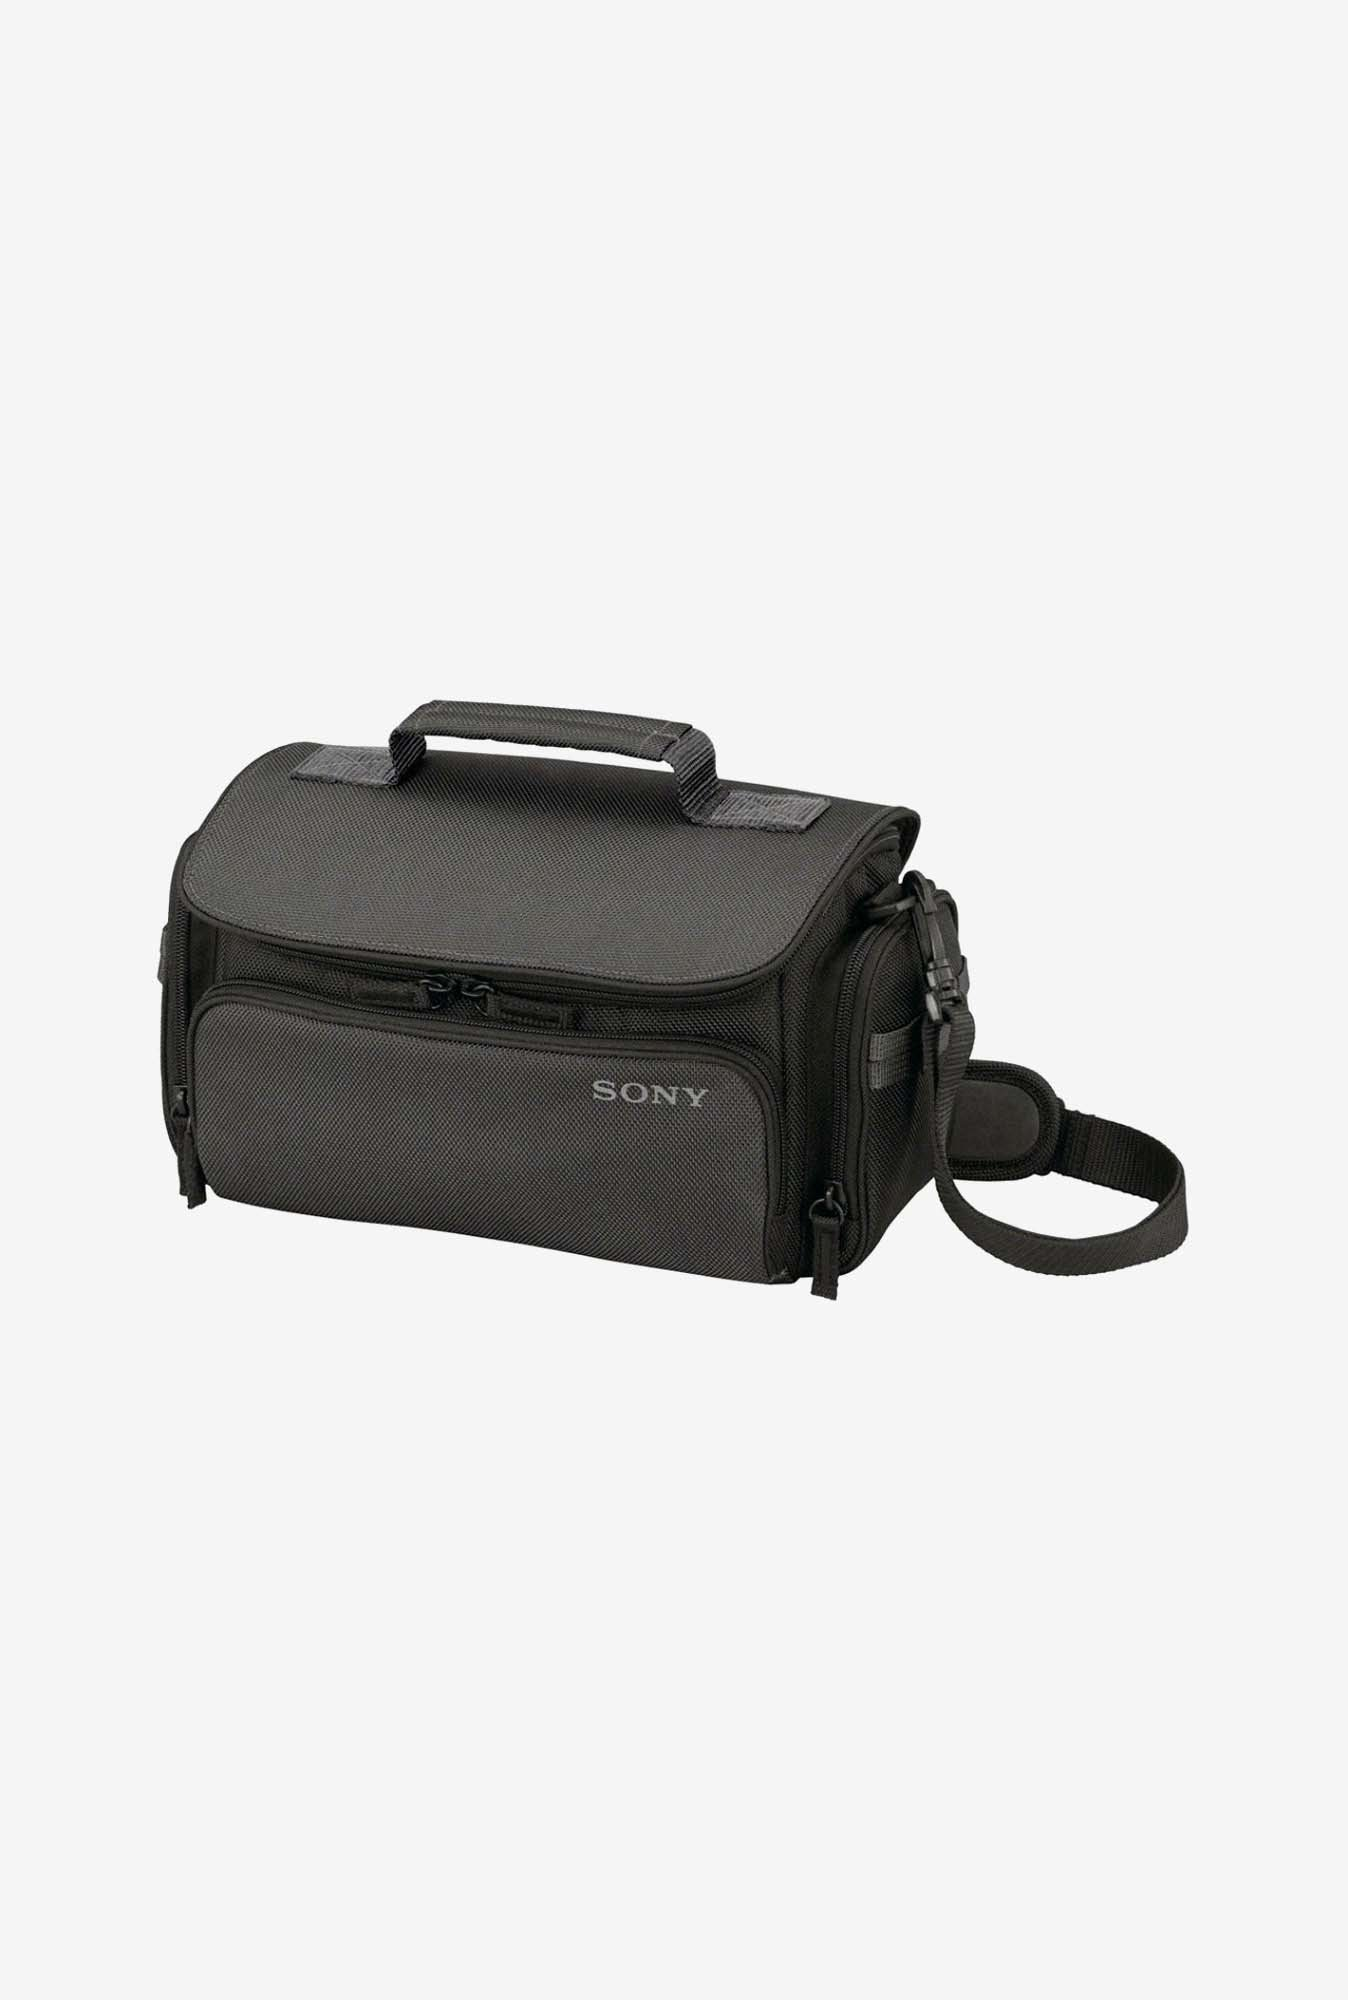 Sony LCSU30B.SYH Handycam Soft Carrying Case (Black)